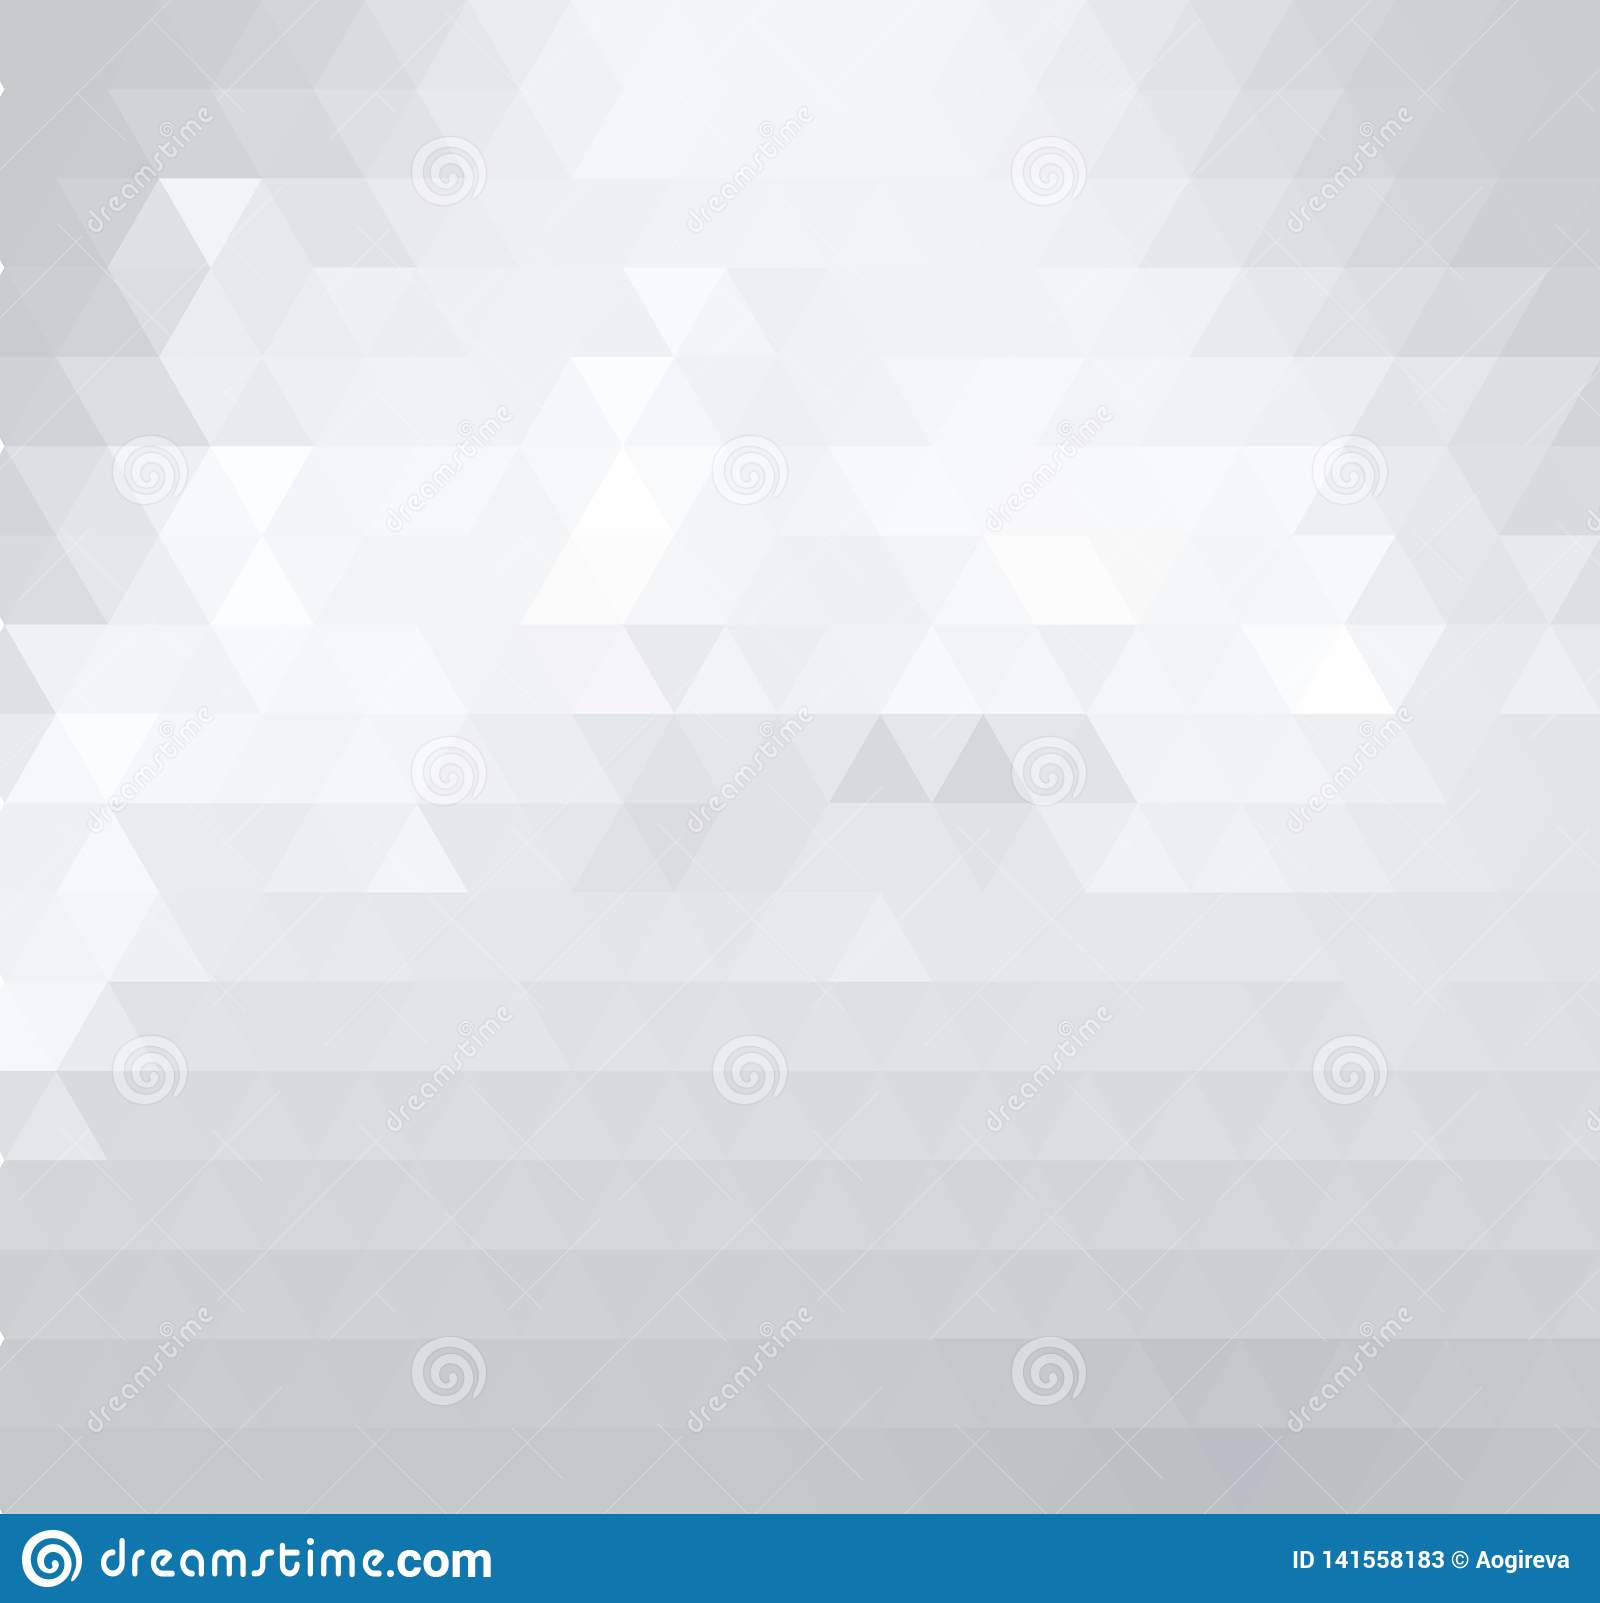 Triangular low poly, light grey, silver, mosaic pattern background.